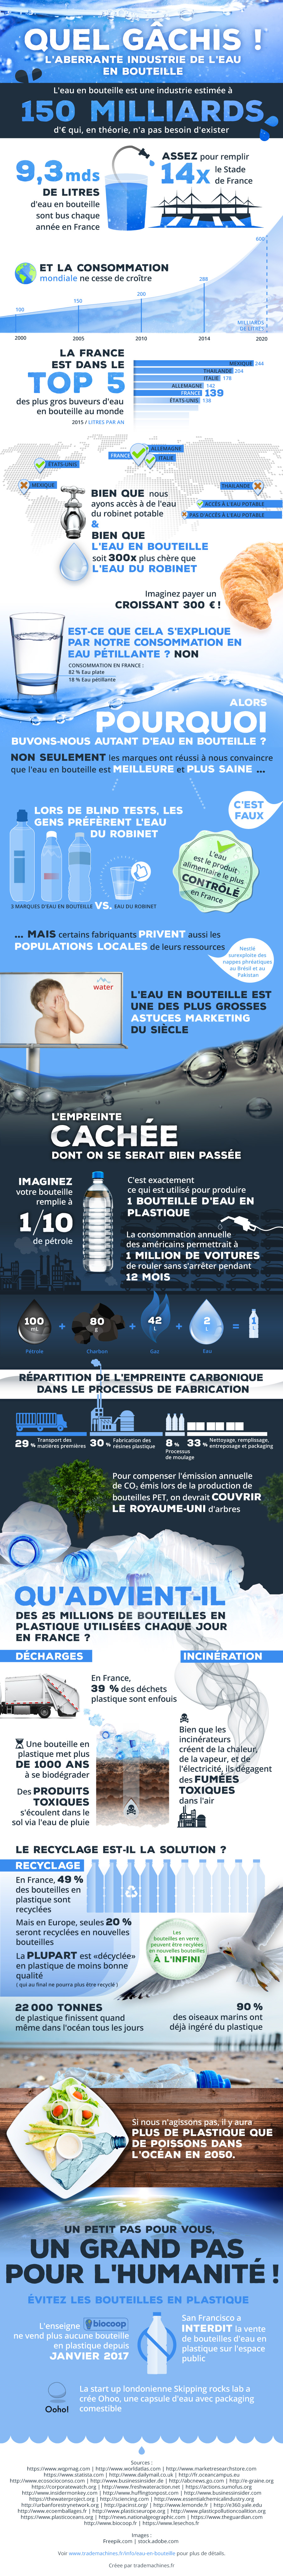 Infographie Solable environnement